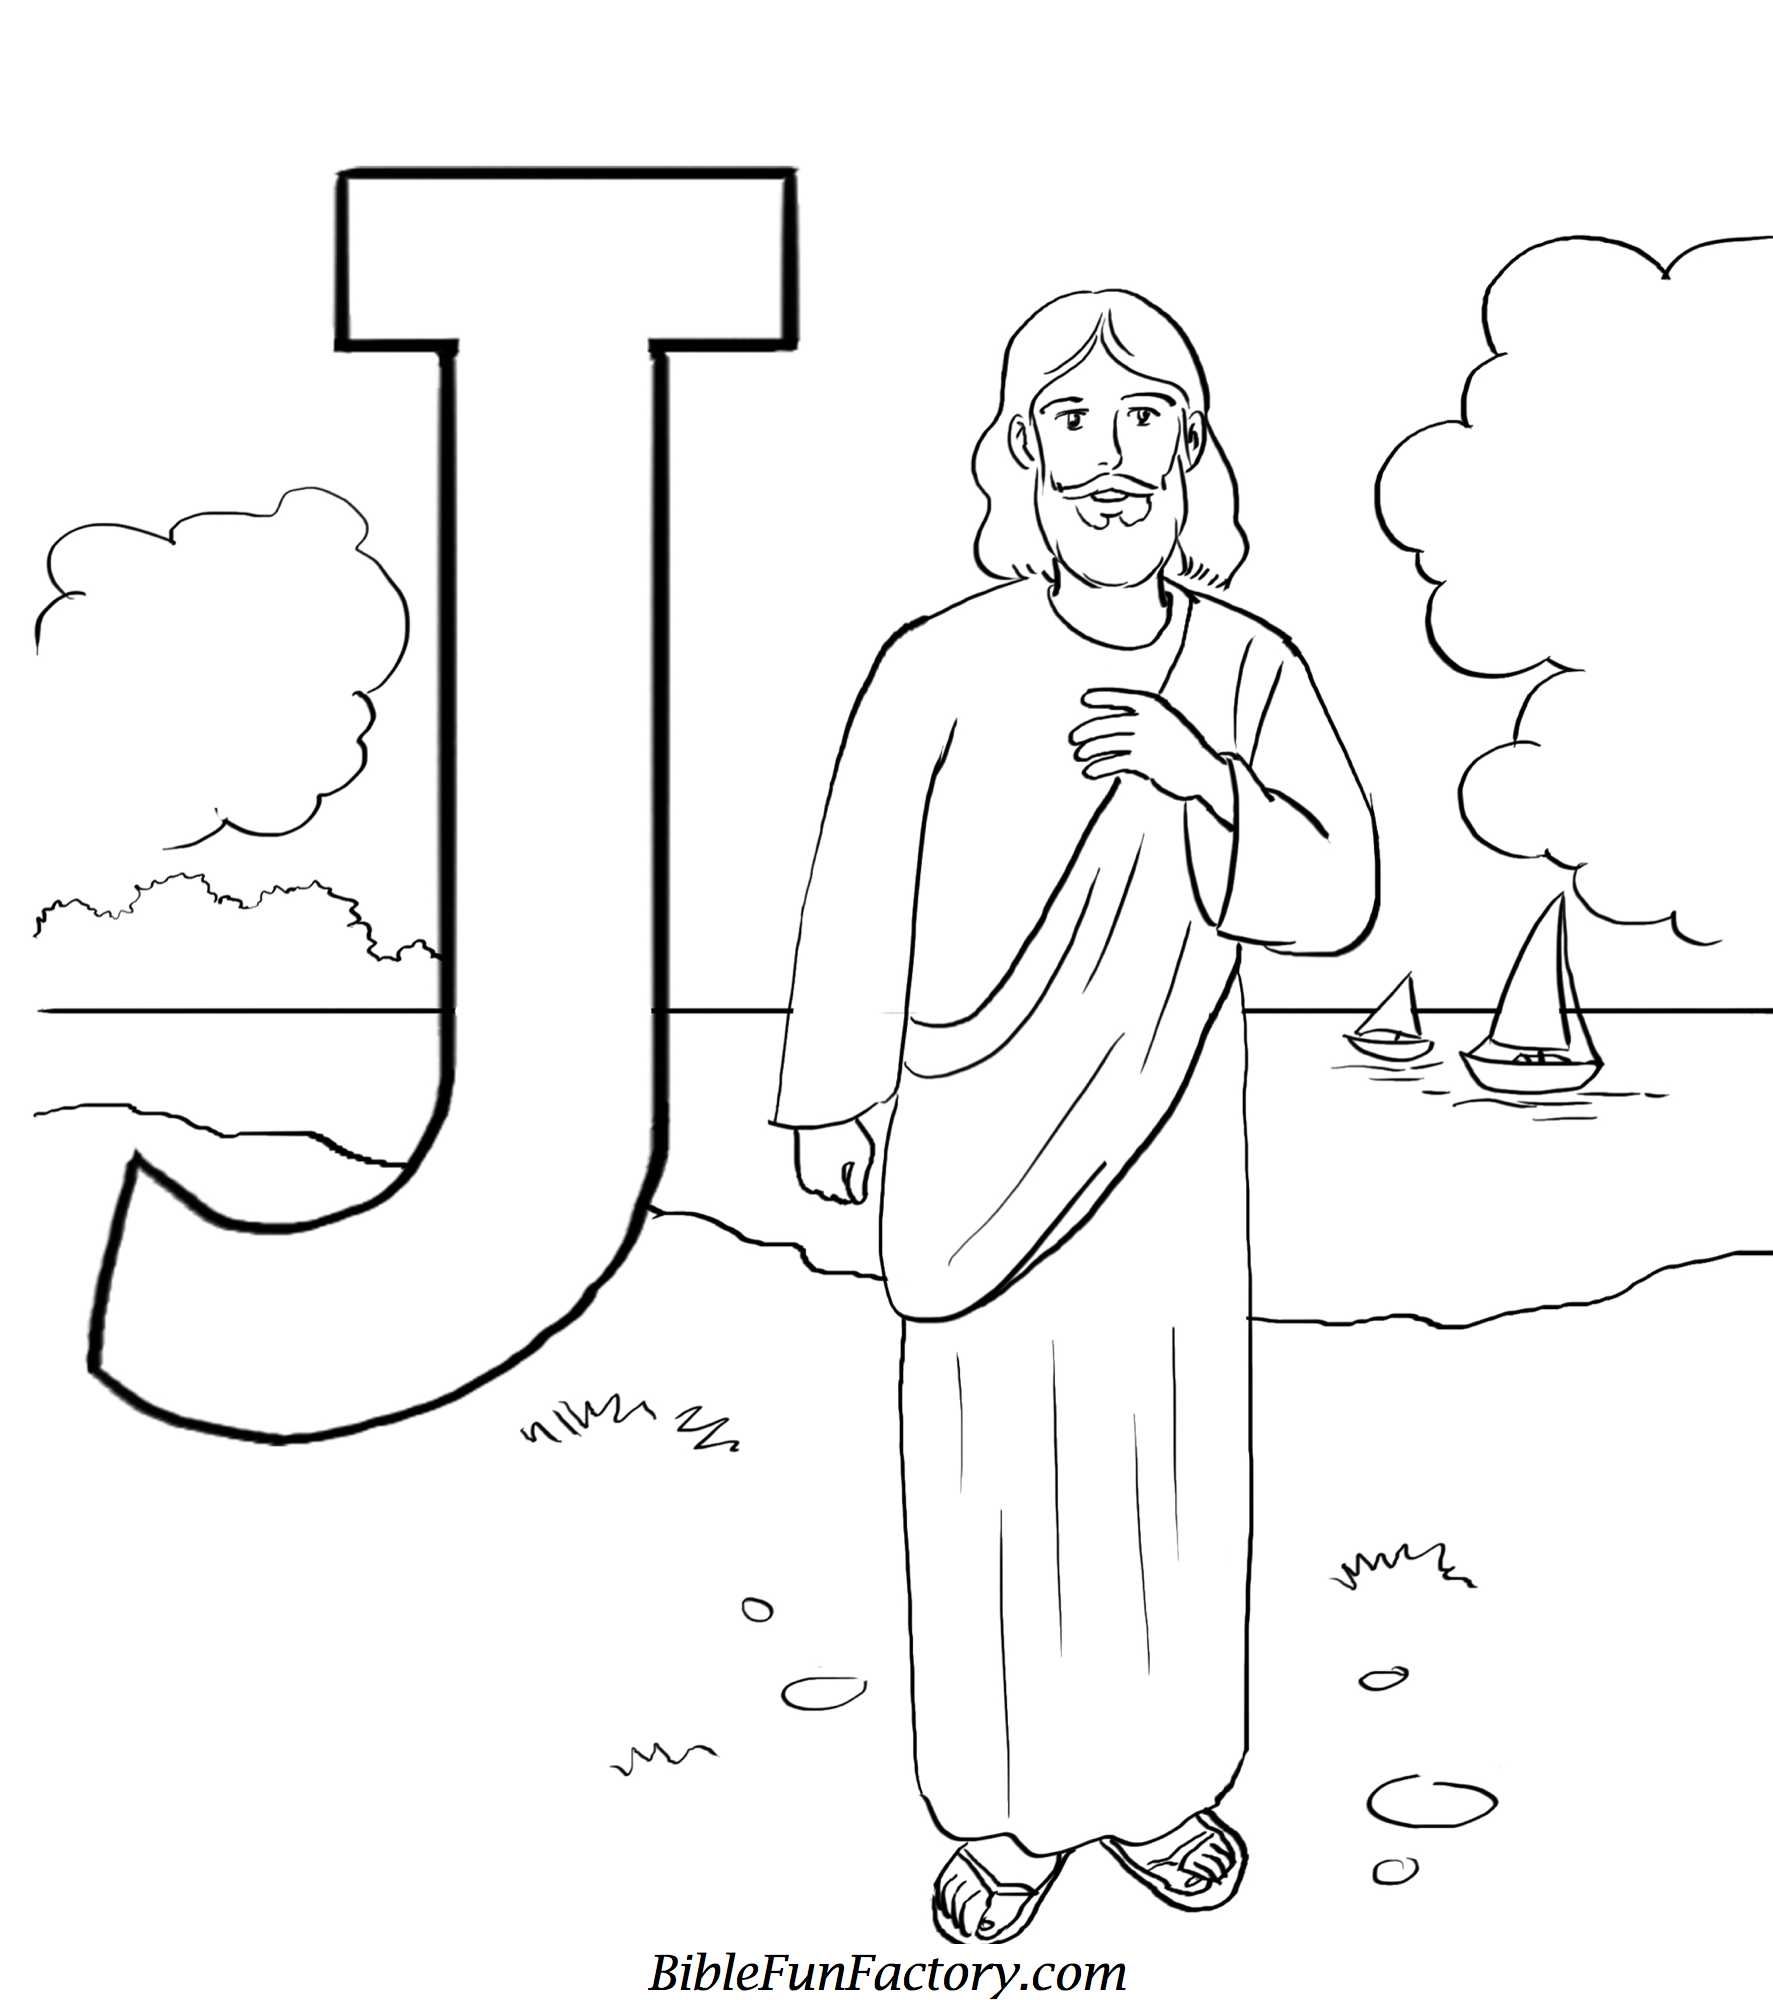 j for jesus coloring page